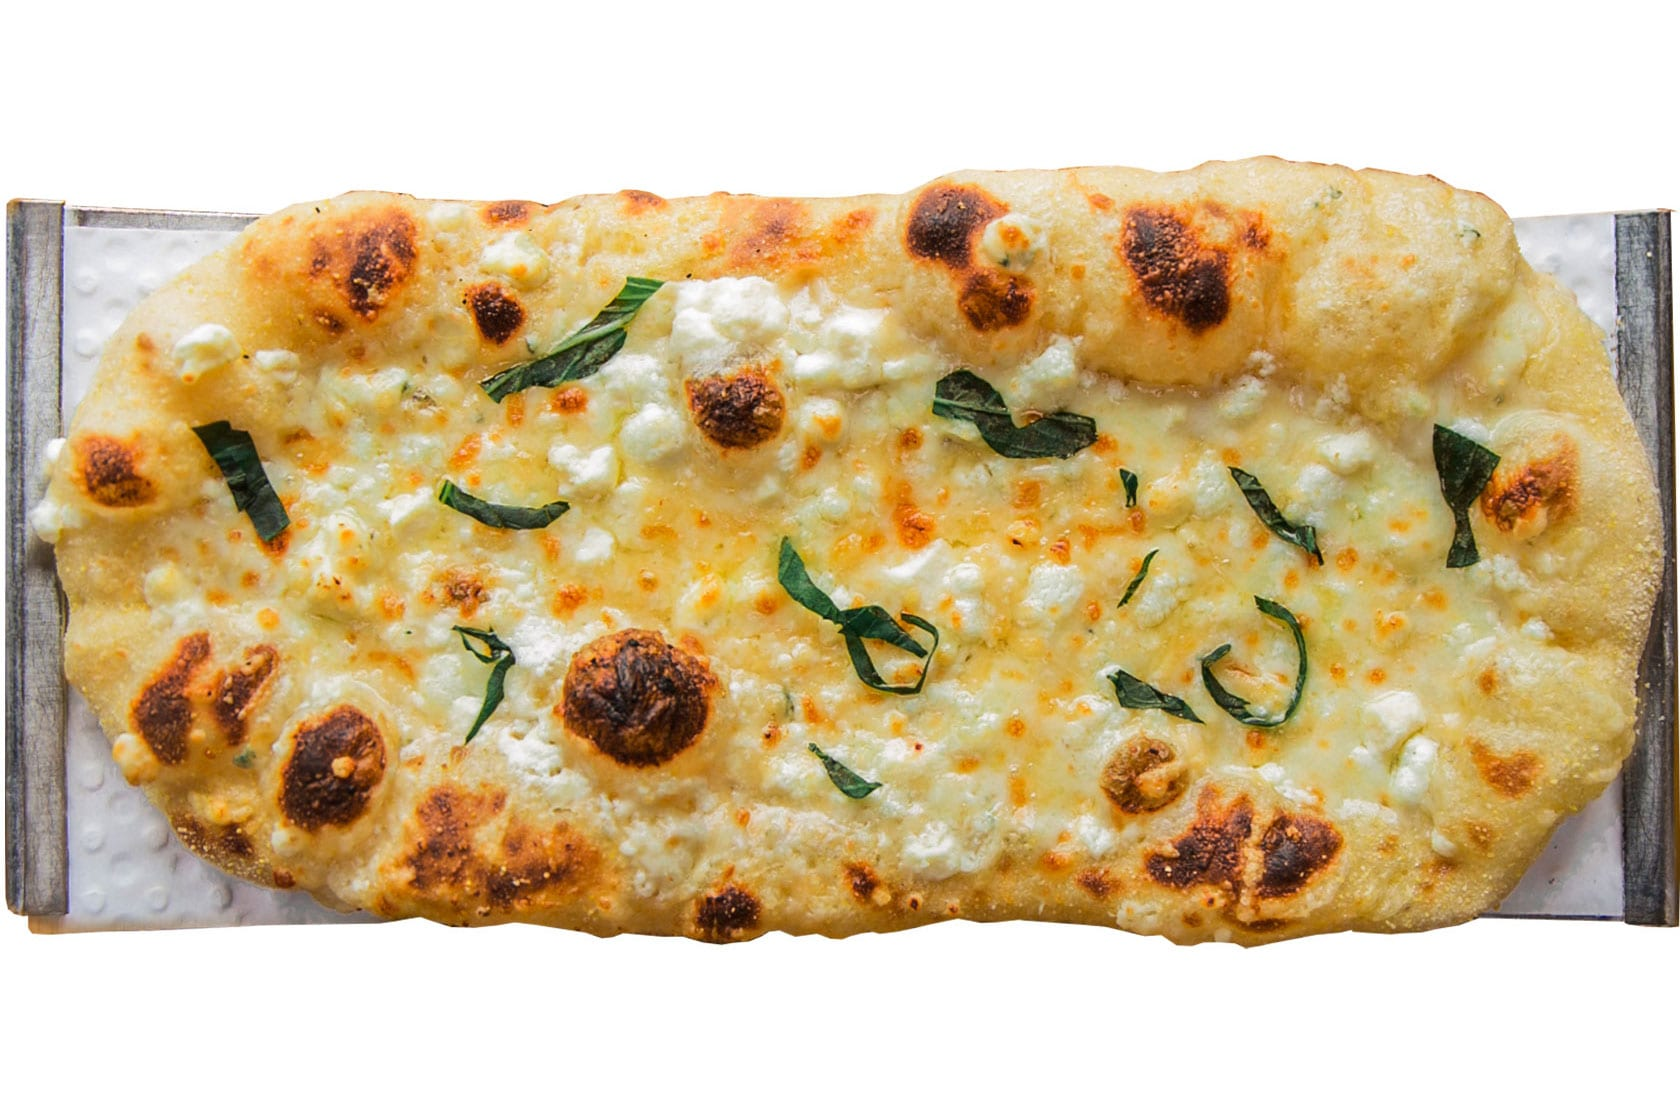 Crushed Red Five Cheese Urban Crafted Pizza